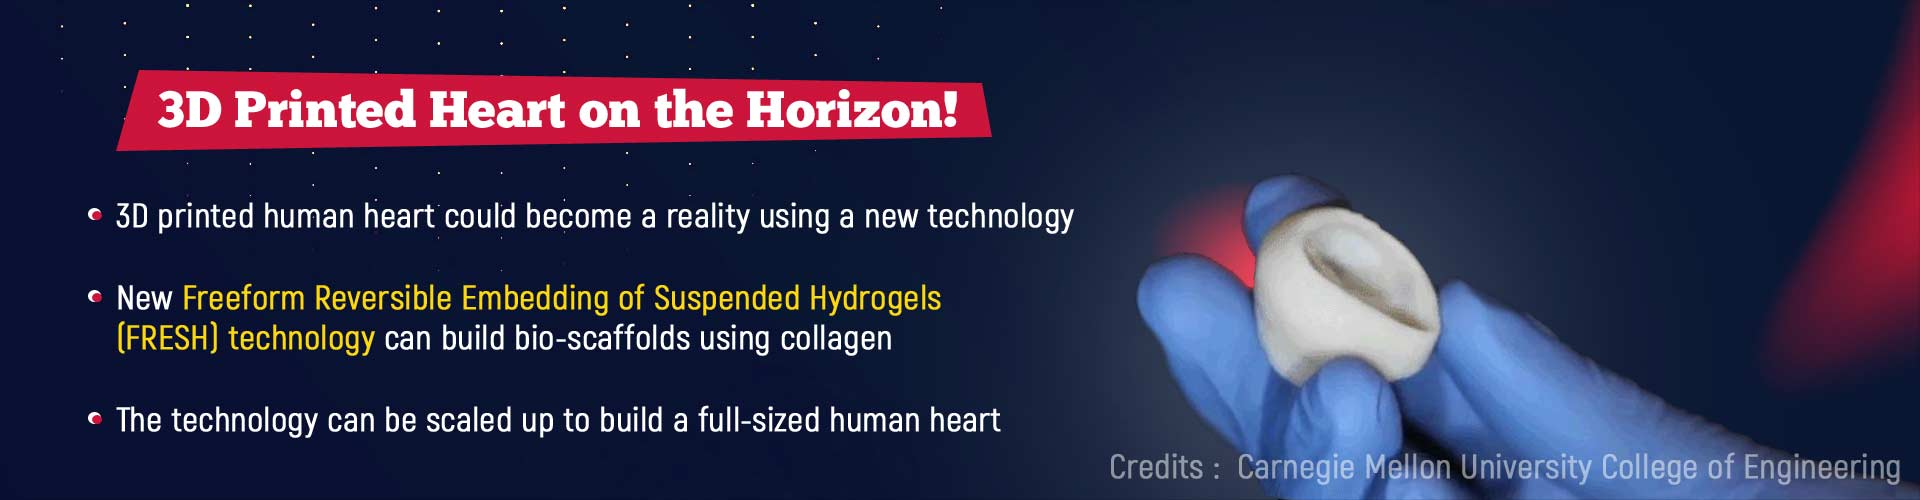 3D printed heart on the horizon. 3D printed human heart could become a reality using a new technology. New Freeform Reversible Embedding of Suspended Hydrogels (FRESH) technology can build bio-scaffolds using collagen. The technology can be scaled to build a full-sized human heart.